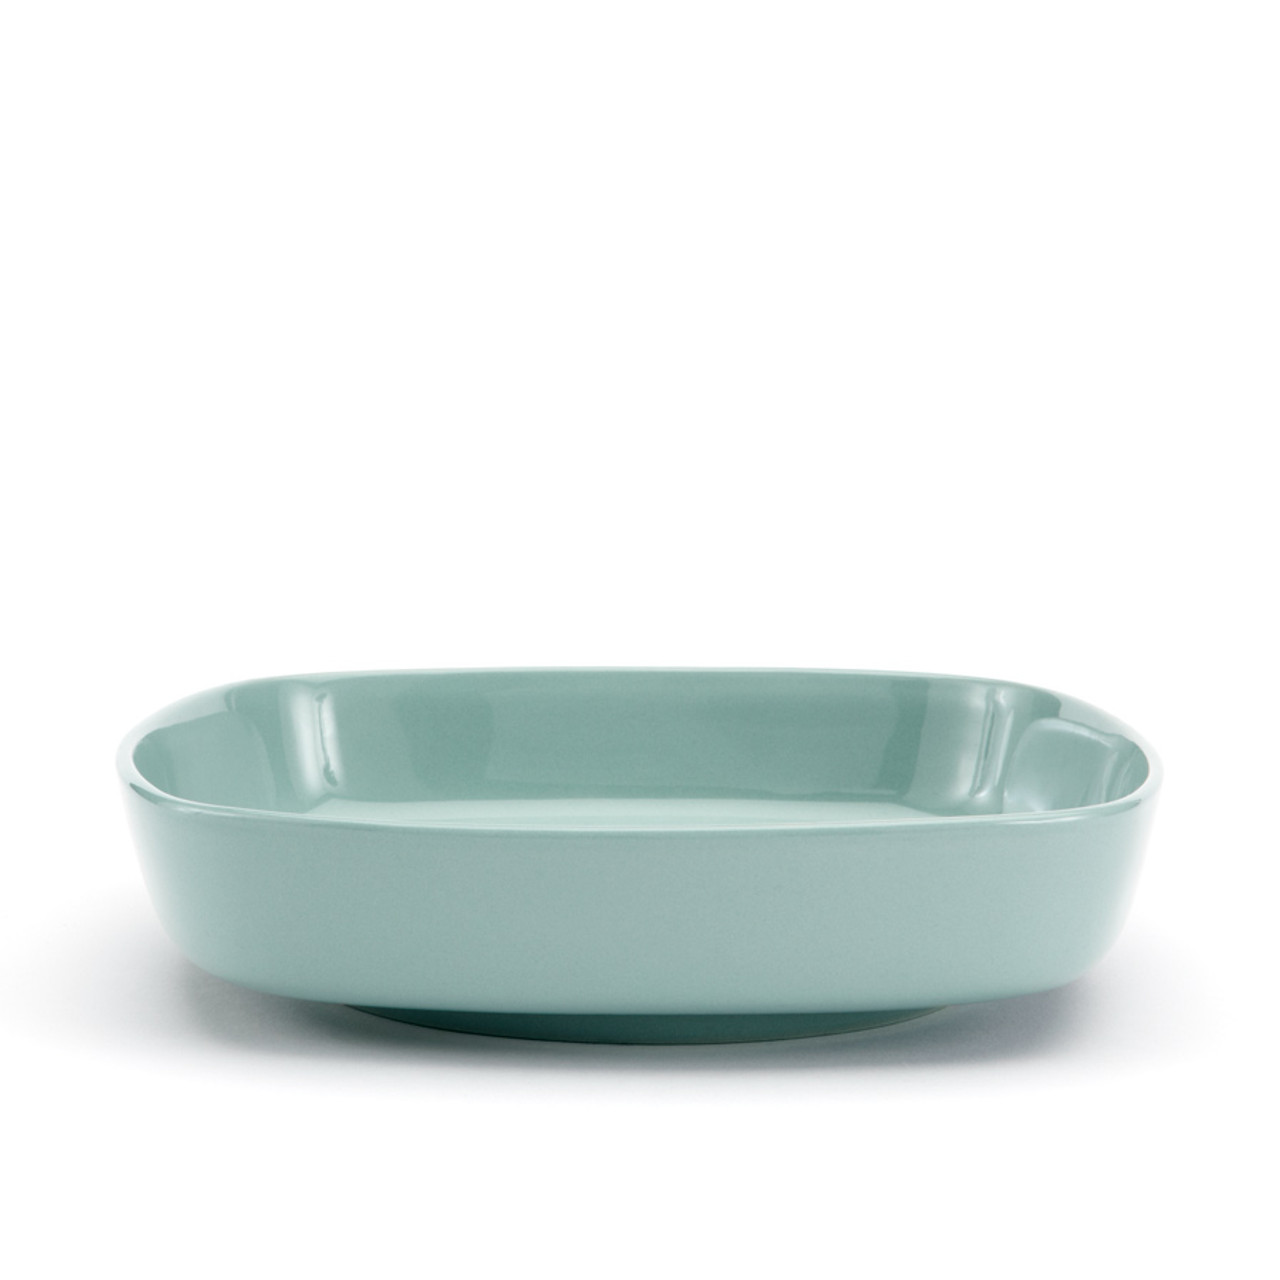 Karo - Blue Pasta Bowl 4 piece set